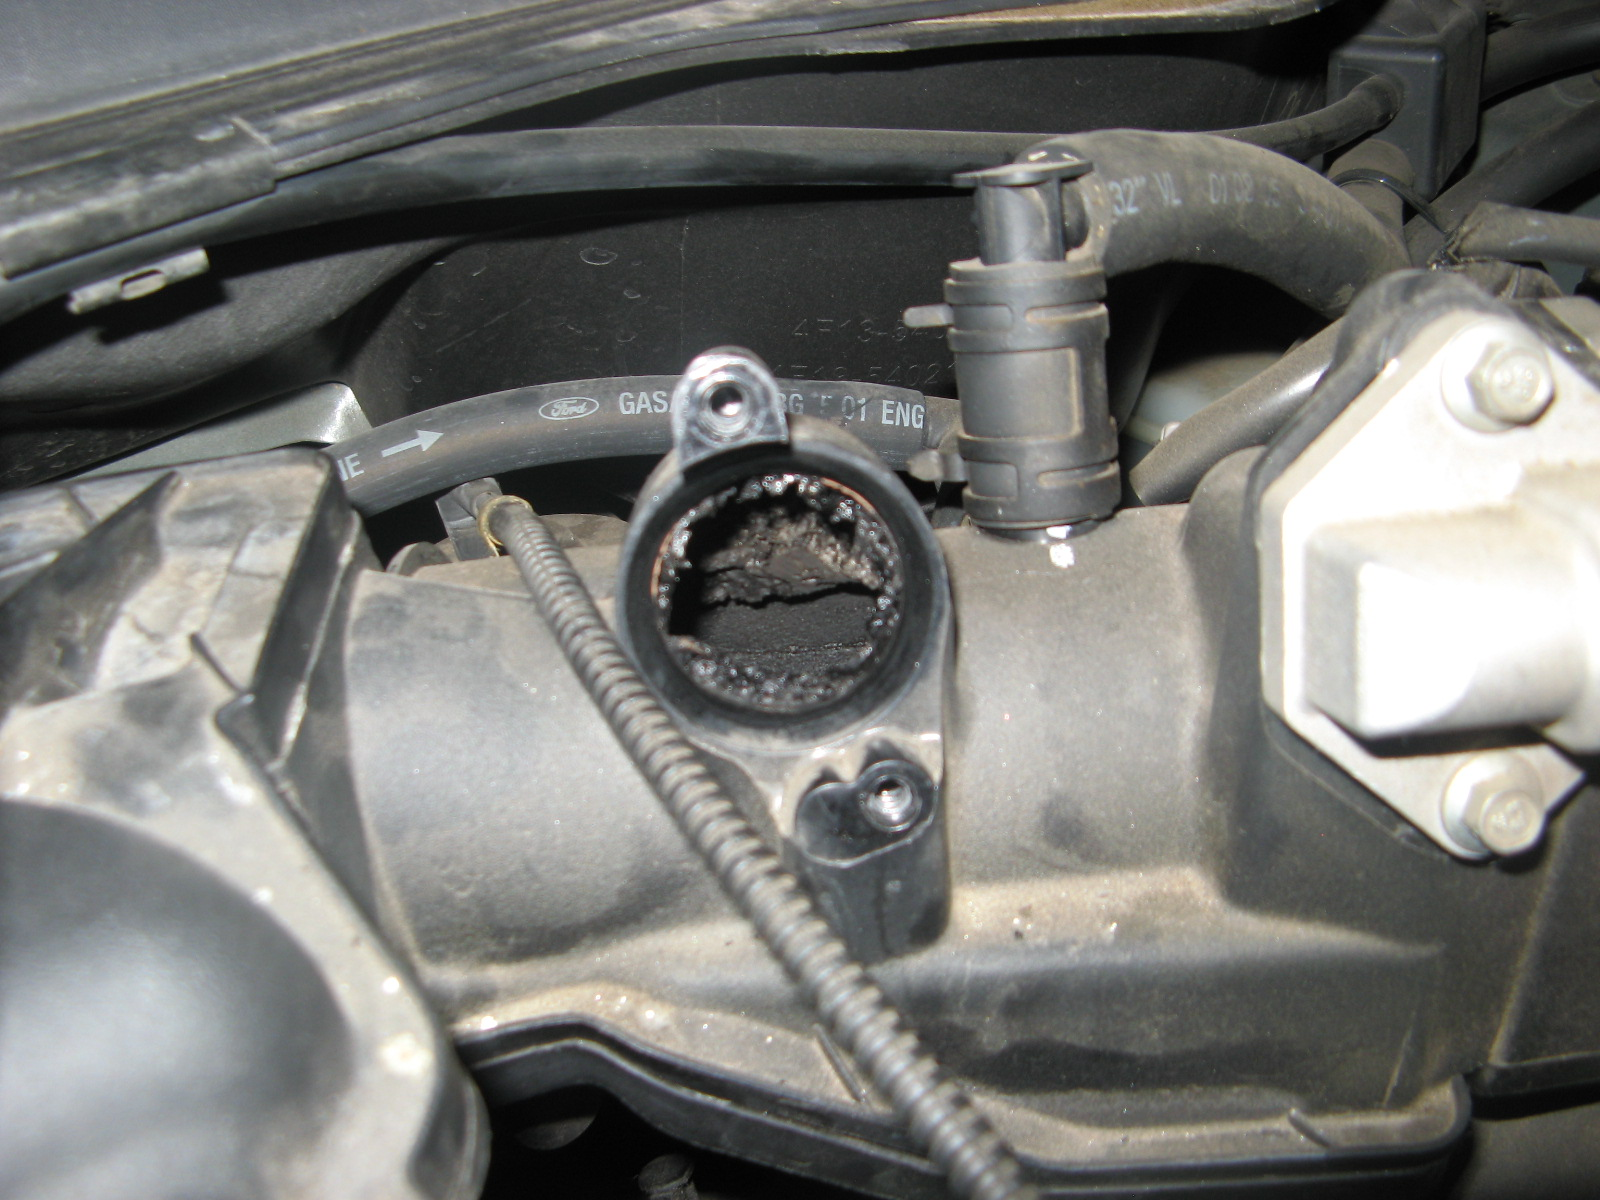 2002 Ford Taurus Starter2002 Starter Wiring Diagram Mercury Sable Power Window Fuse Pcv Hose Connector Melting What Causes Car Club